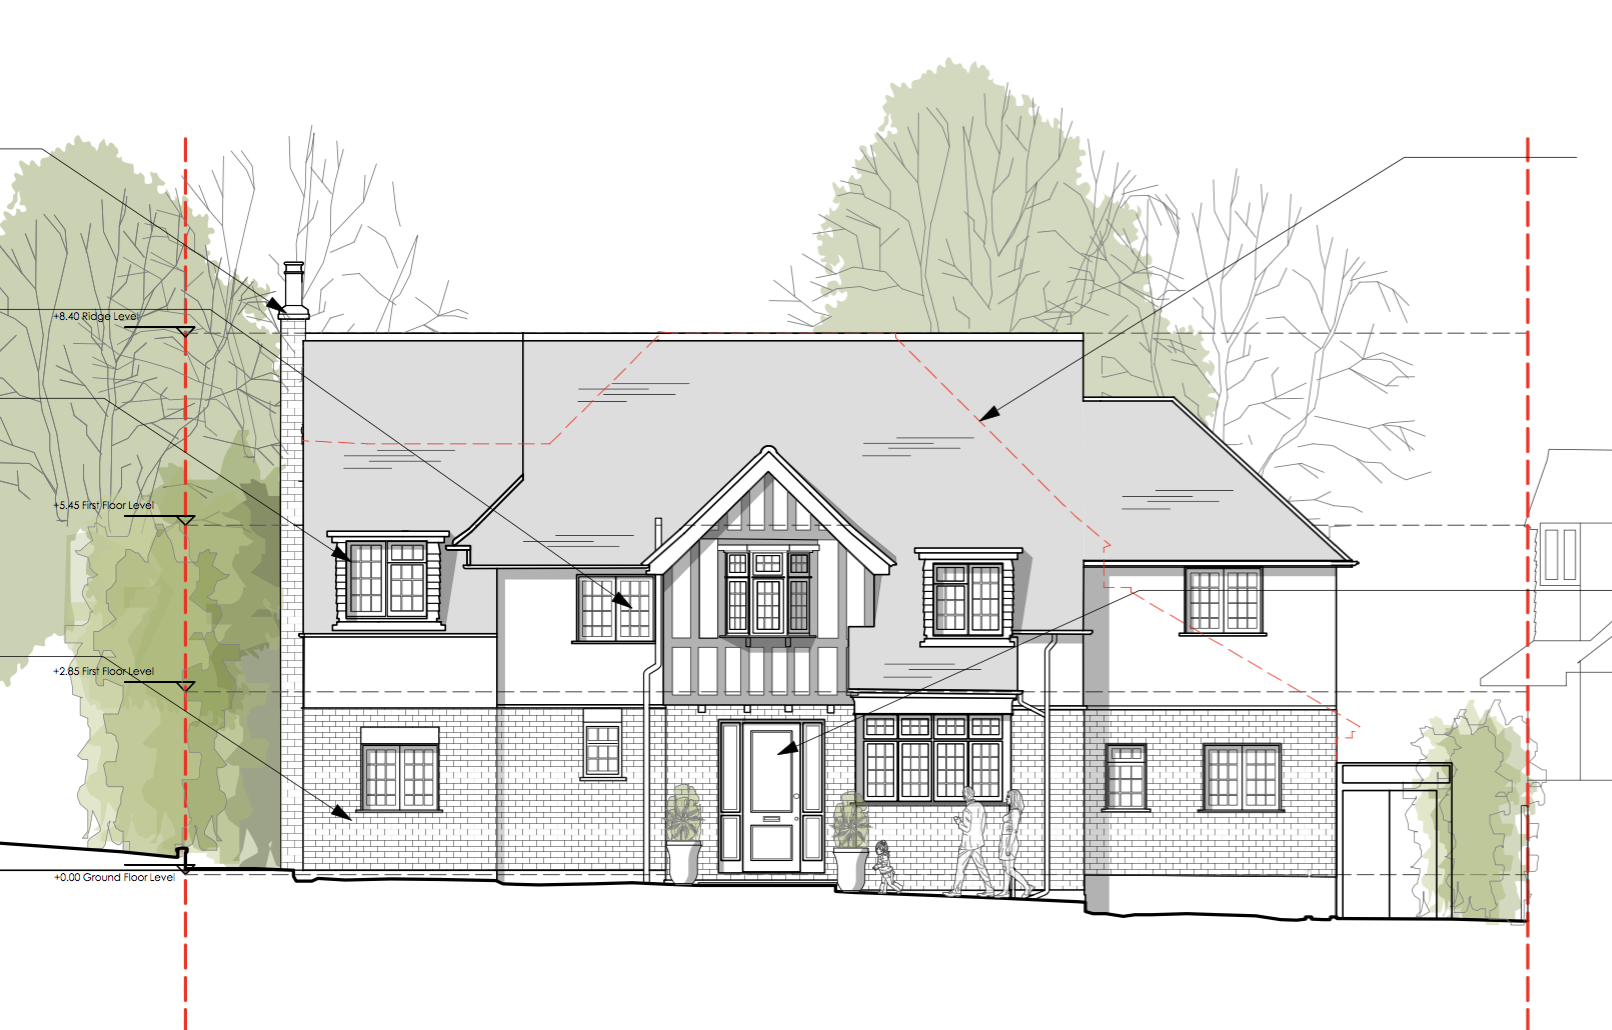 Front Elevation Architectural Plans for Surbiton Home Renovation